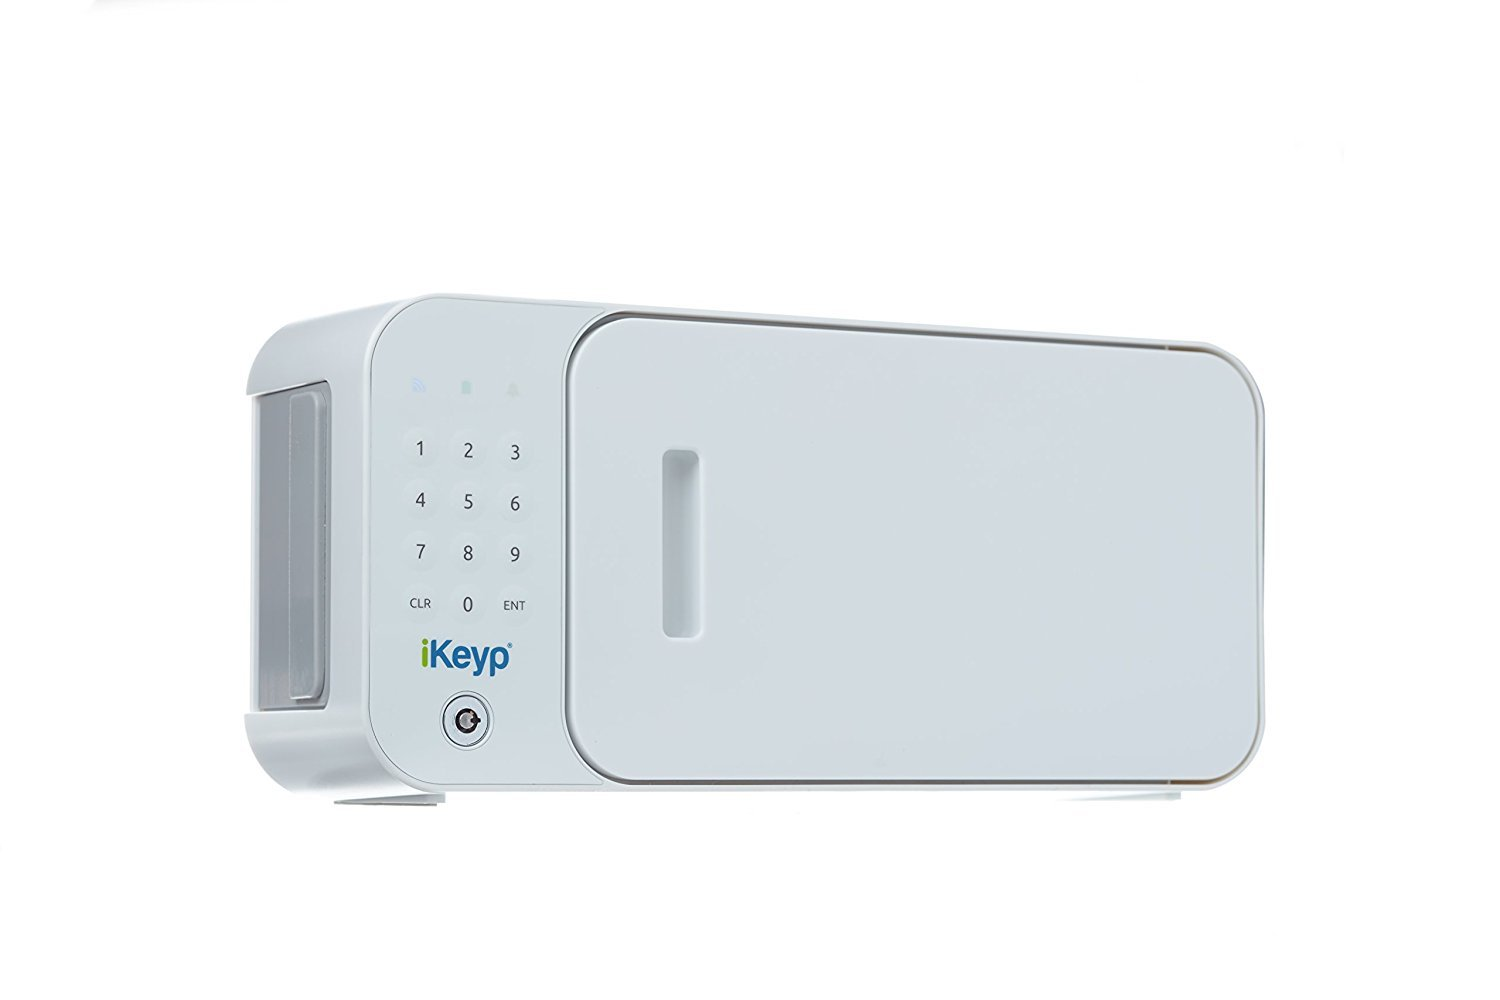 ikeyp smart safe